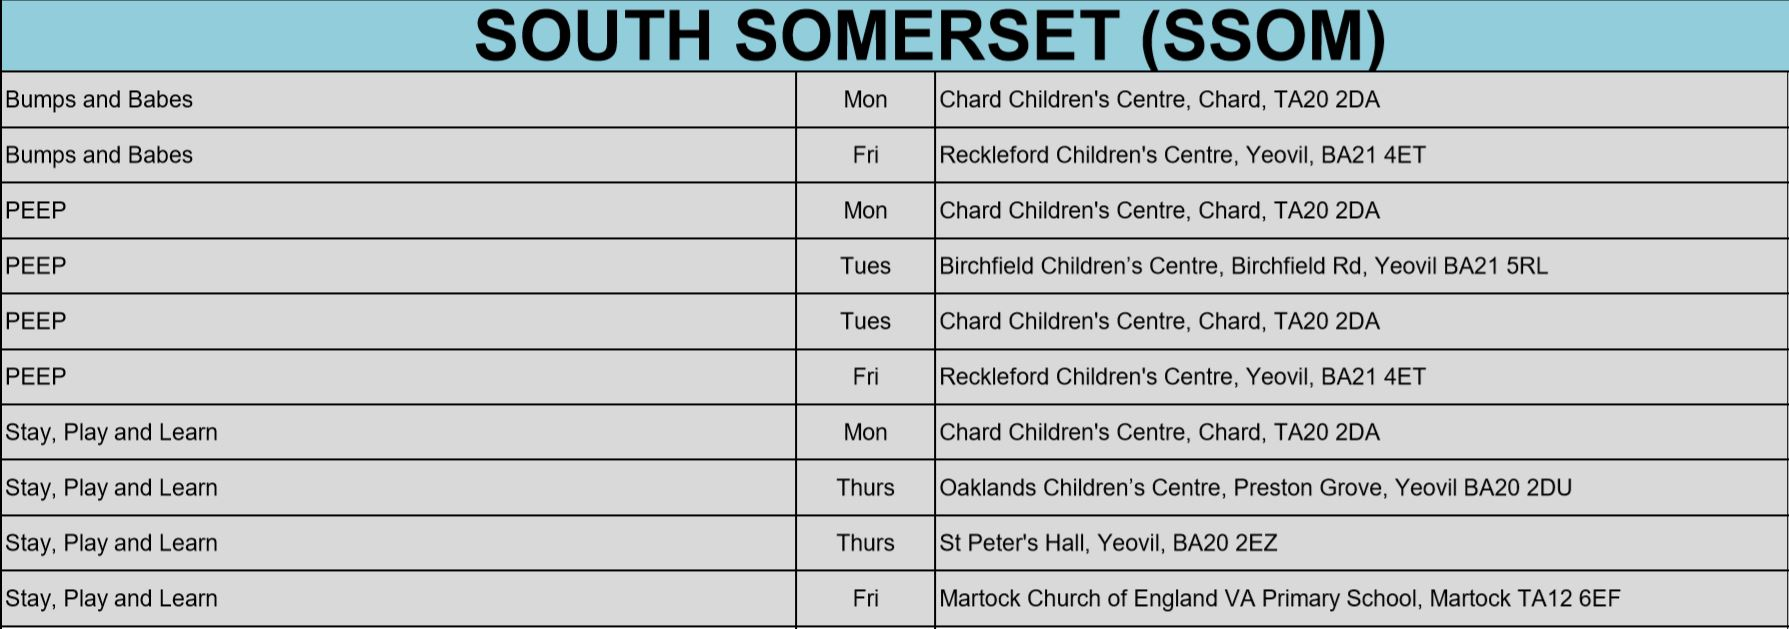 List of South Somerset GetSet cuts